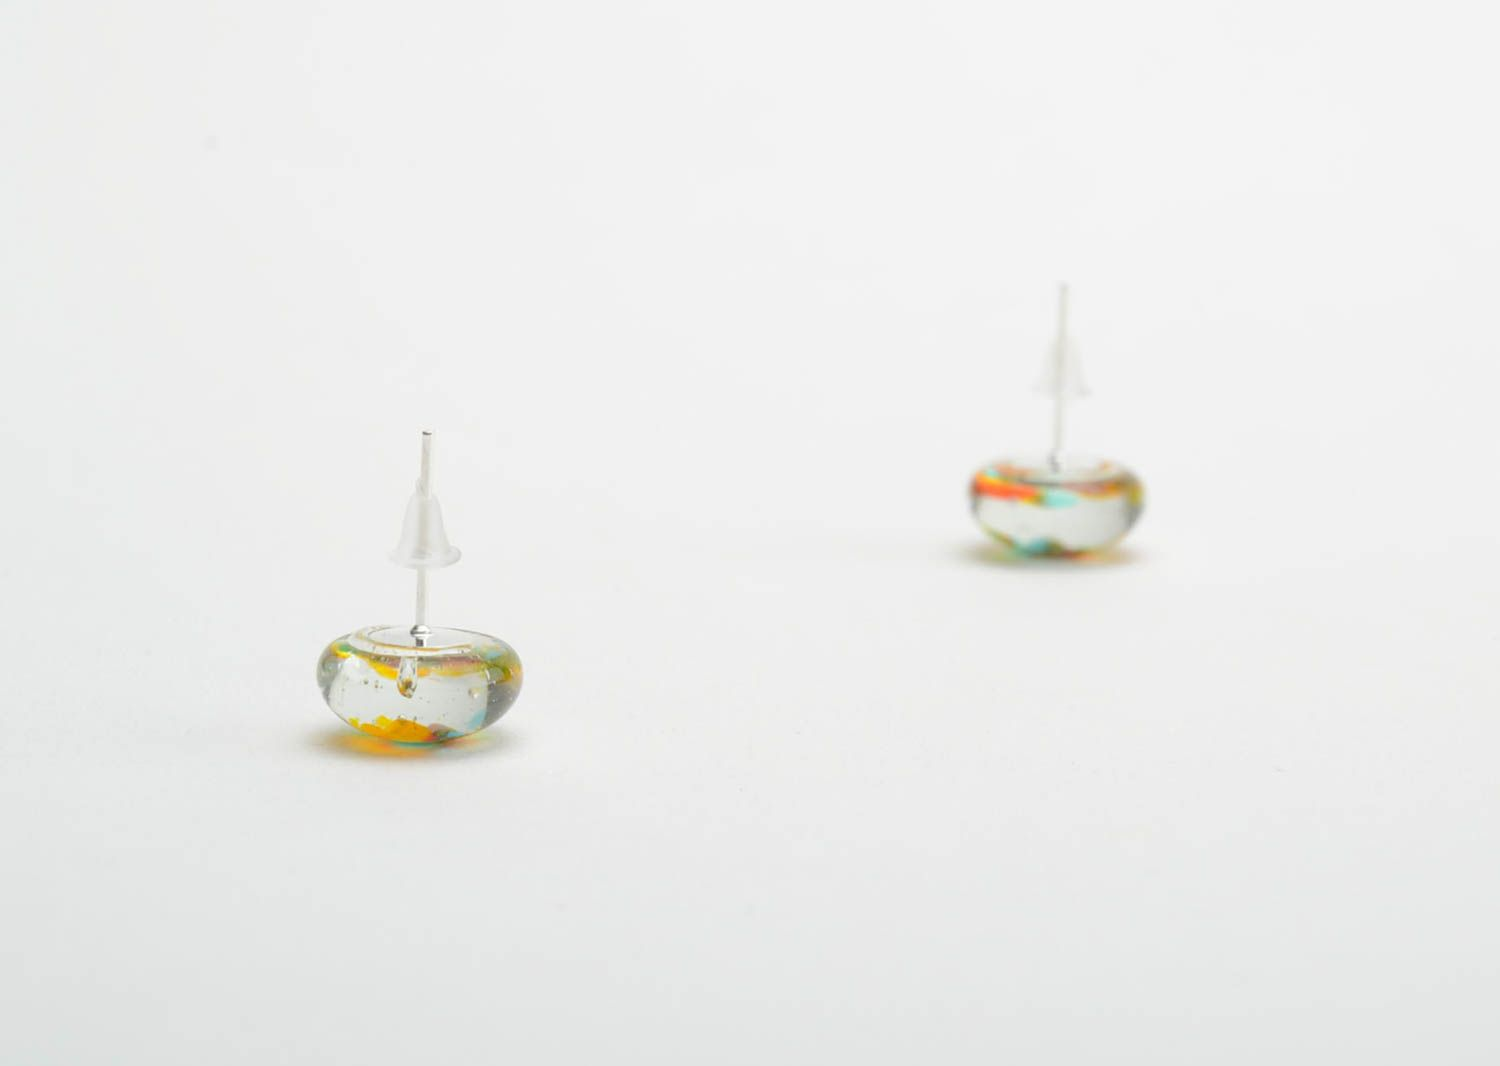 stud earrings Small round earrings made of glass beautiful women accessory for every day - MADEheart.com